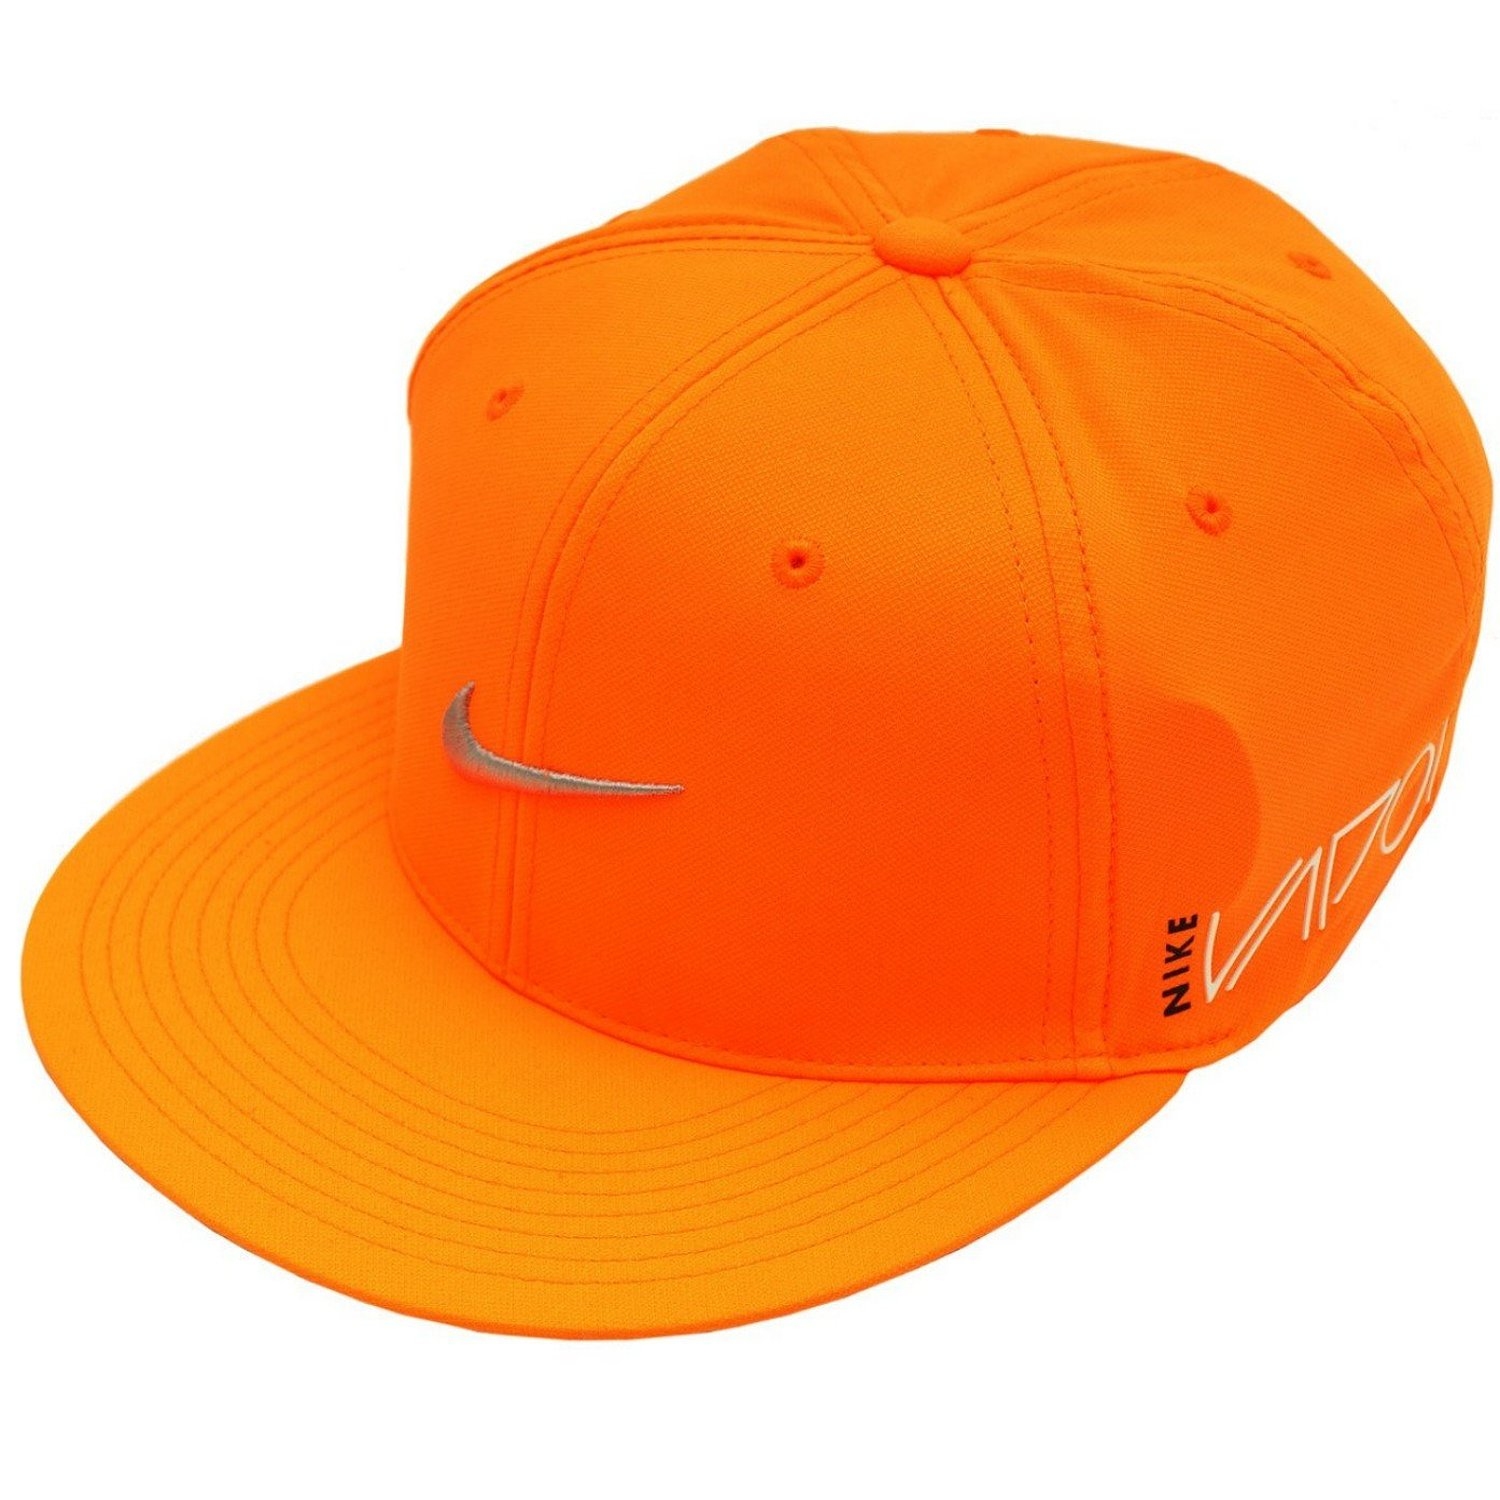 b64c3f94b45 Get Quotations · NIKE RZN Vapor Ultralight Golf Cap Pro True Tour Flex-Fit  Hat (Total Orange